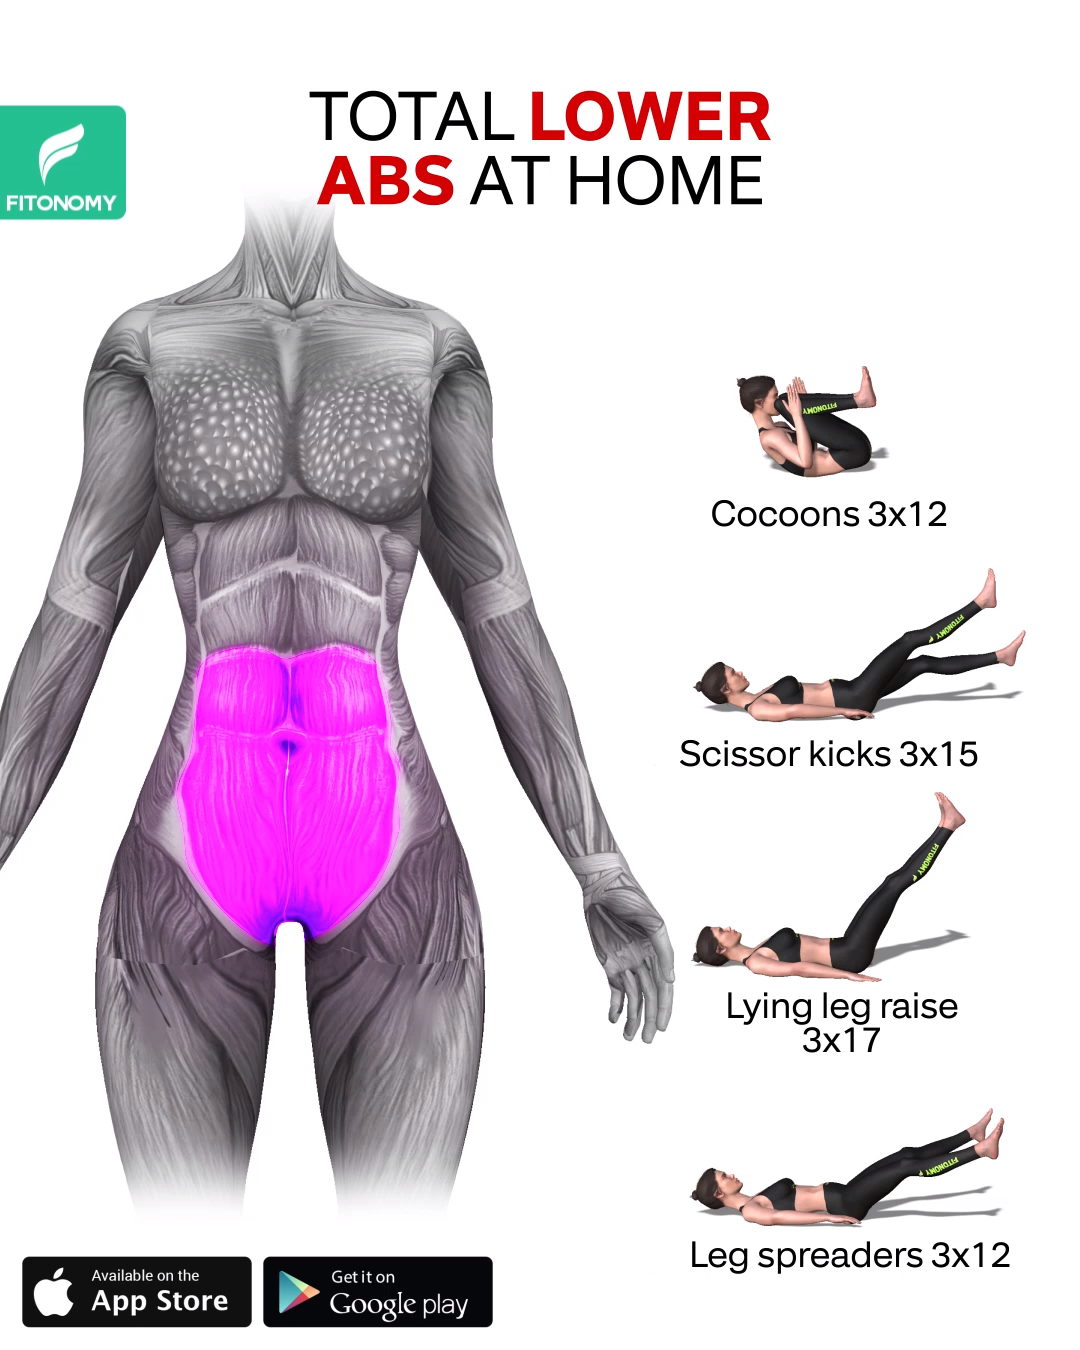 TOTAL LOWER ABS AT HOME